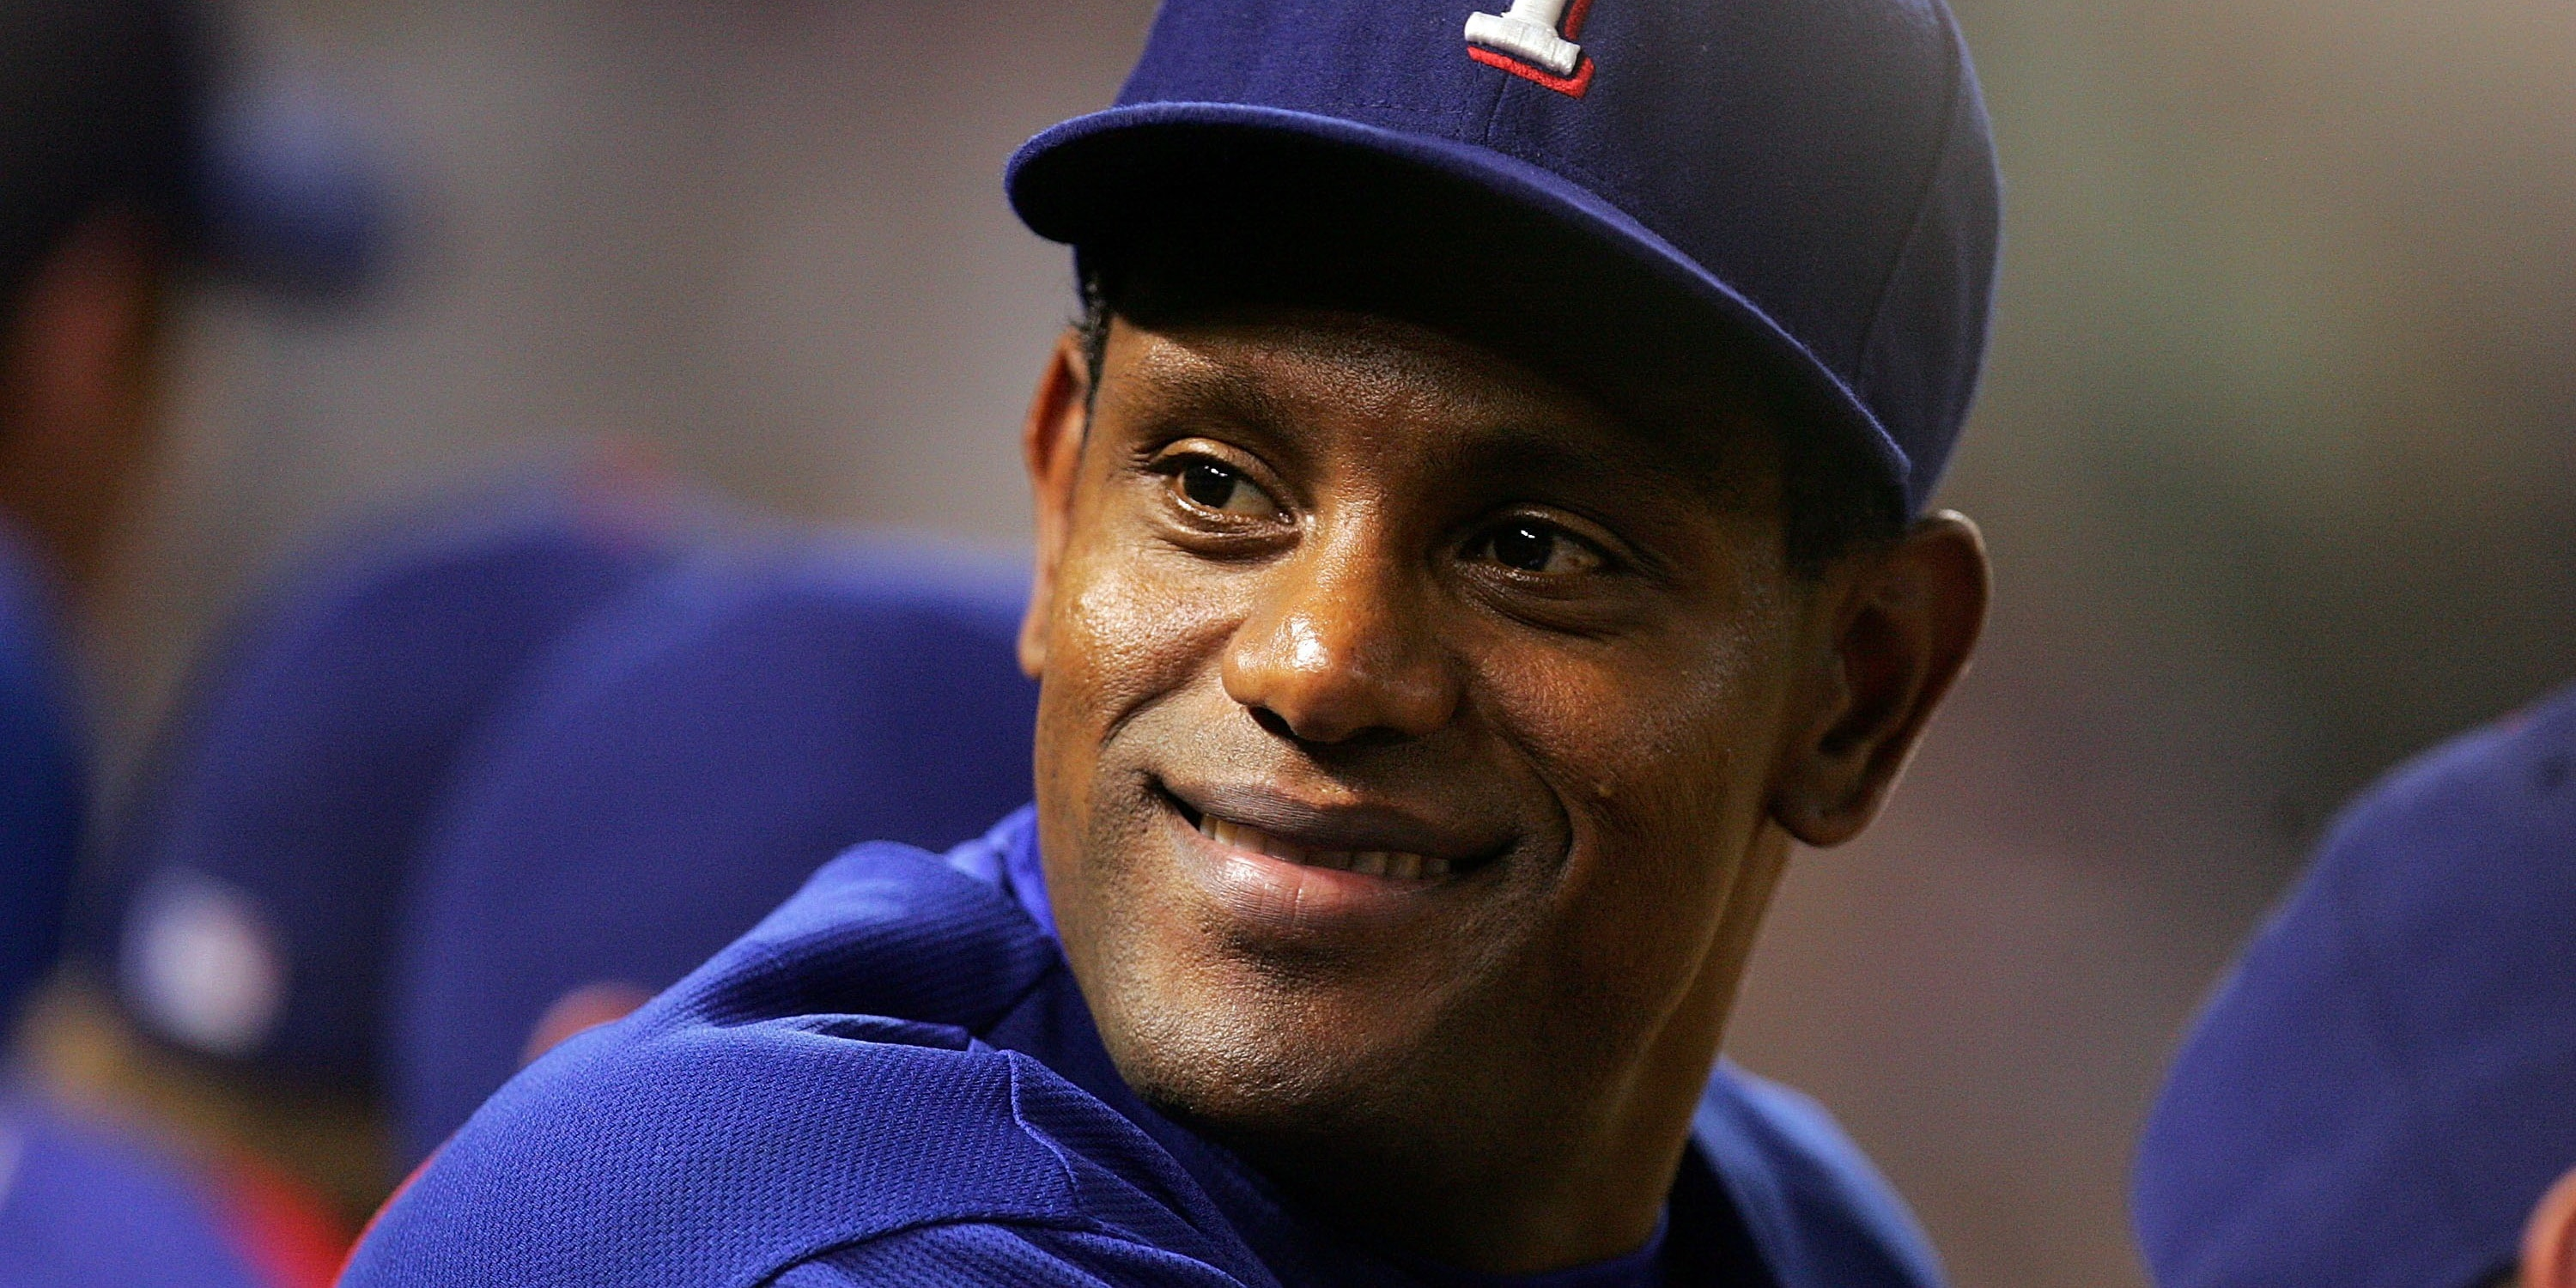 sammy sosa - photo #20